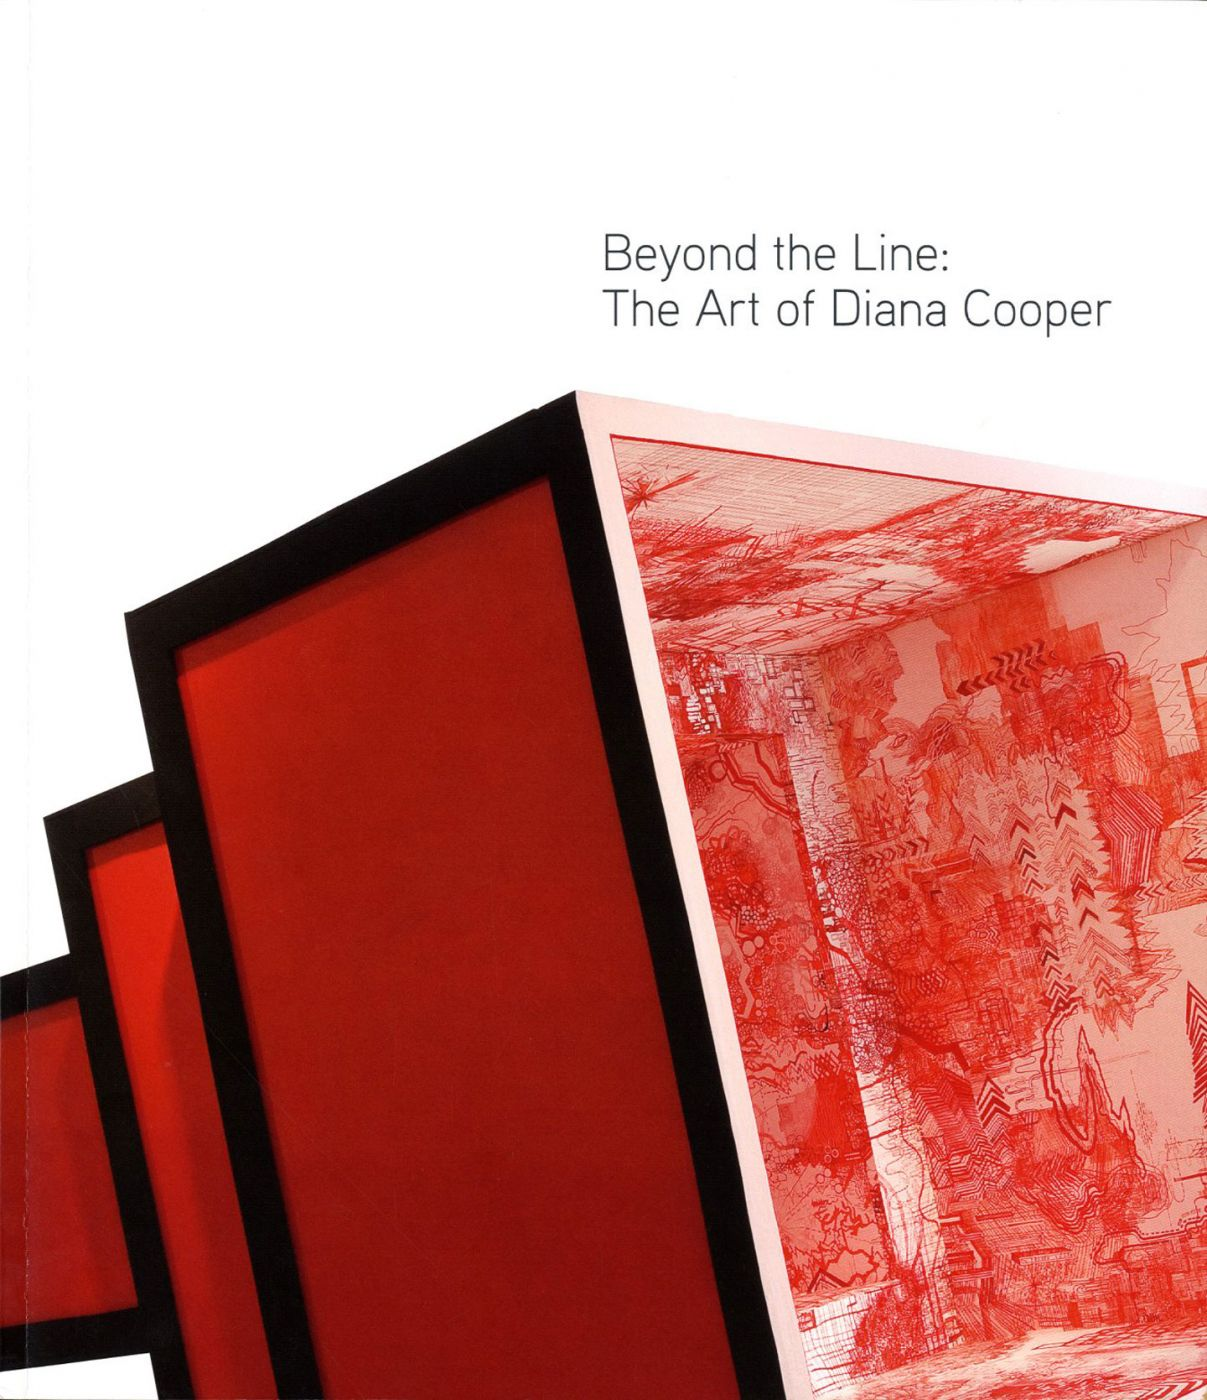 Beyond The Line: The Art of Diana Cooper